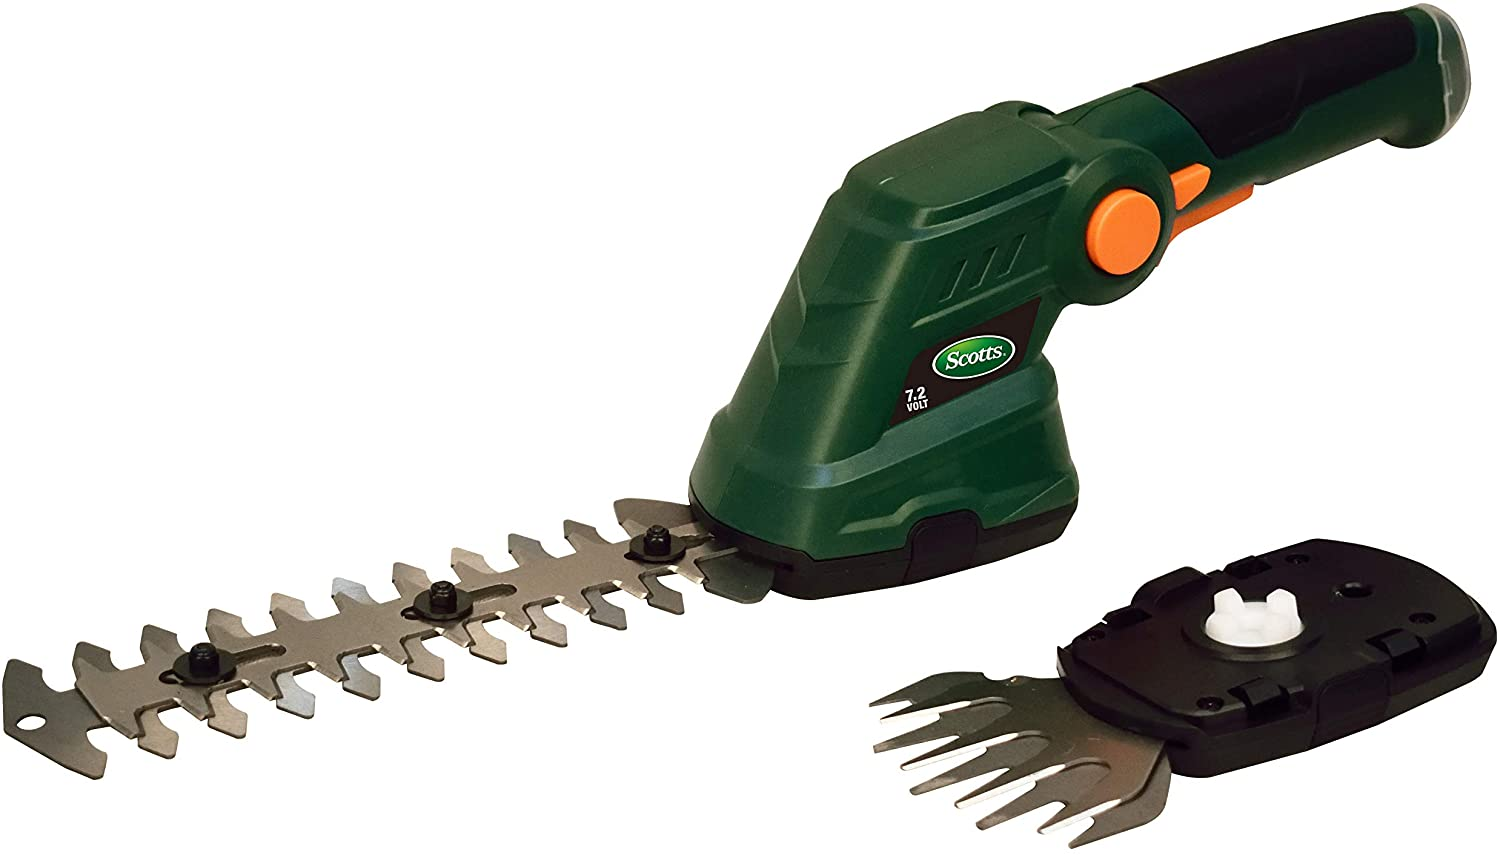 Scotts Outdoor Power Tools LSS10172S Cordless Hedge Trimmer